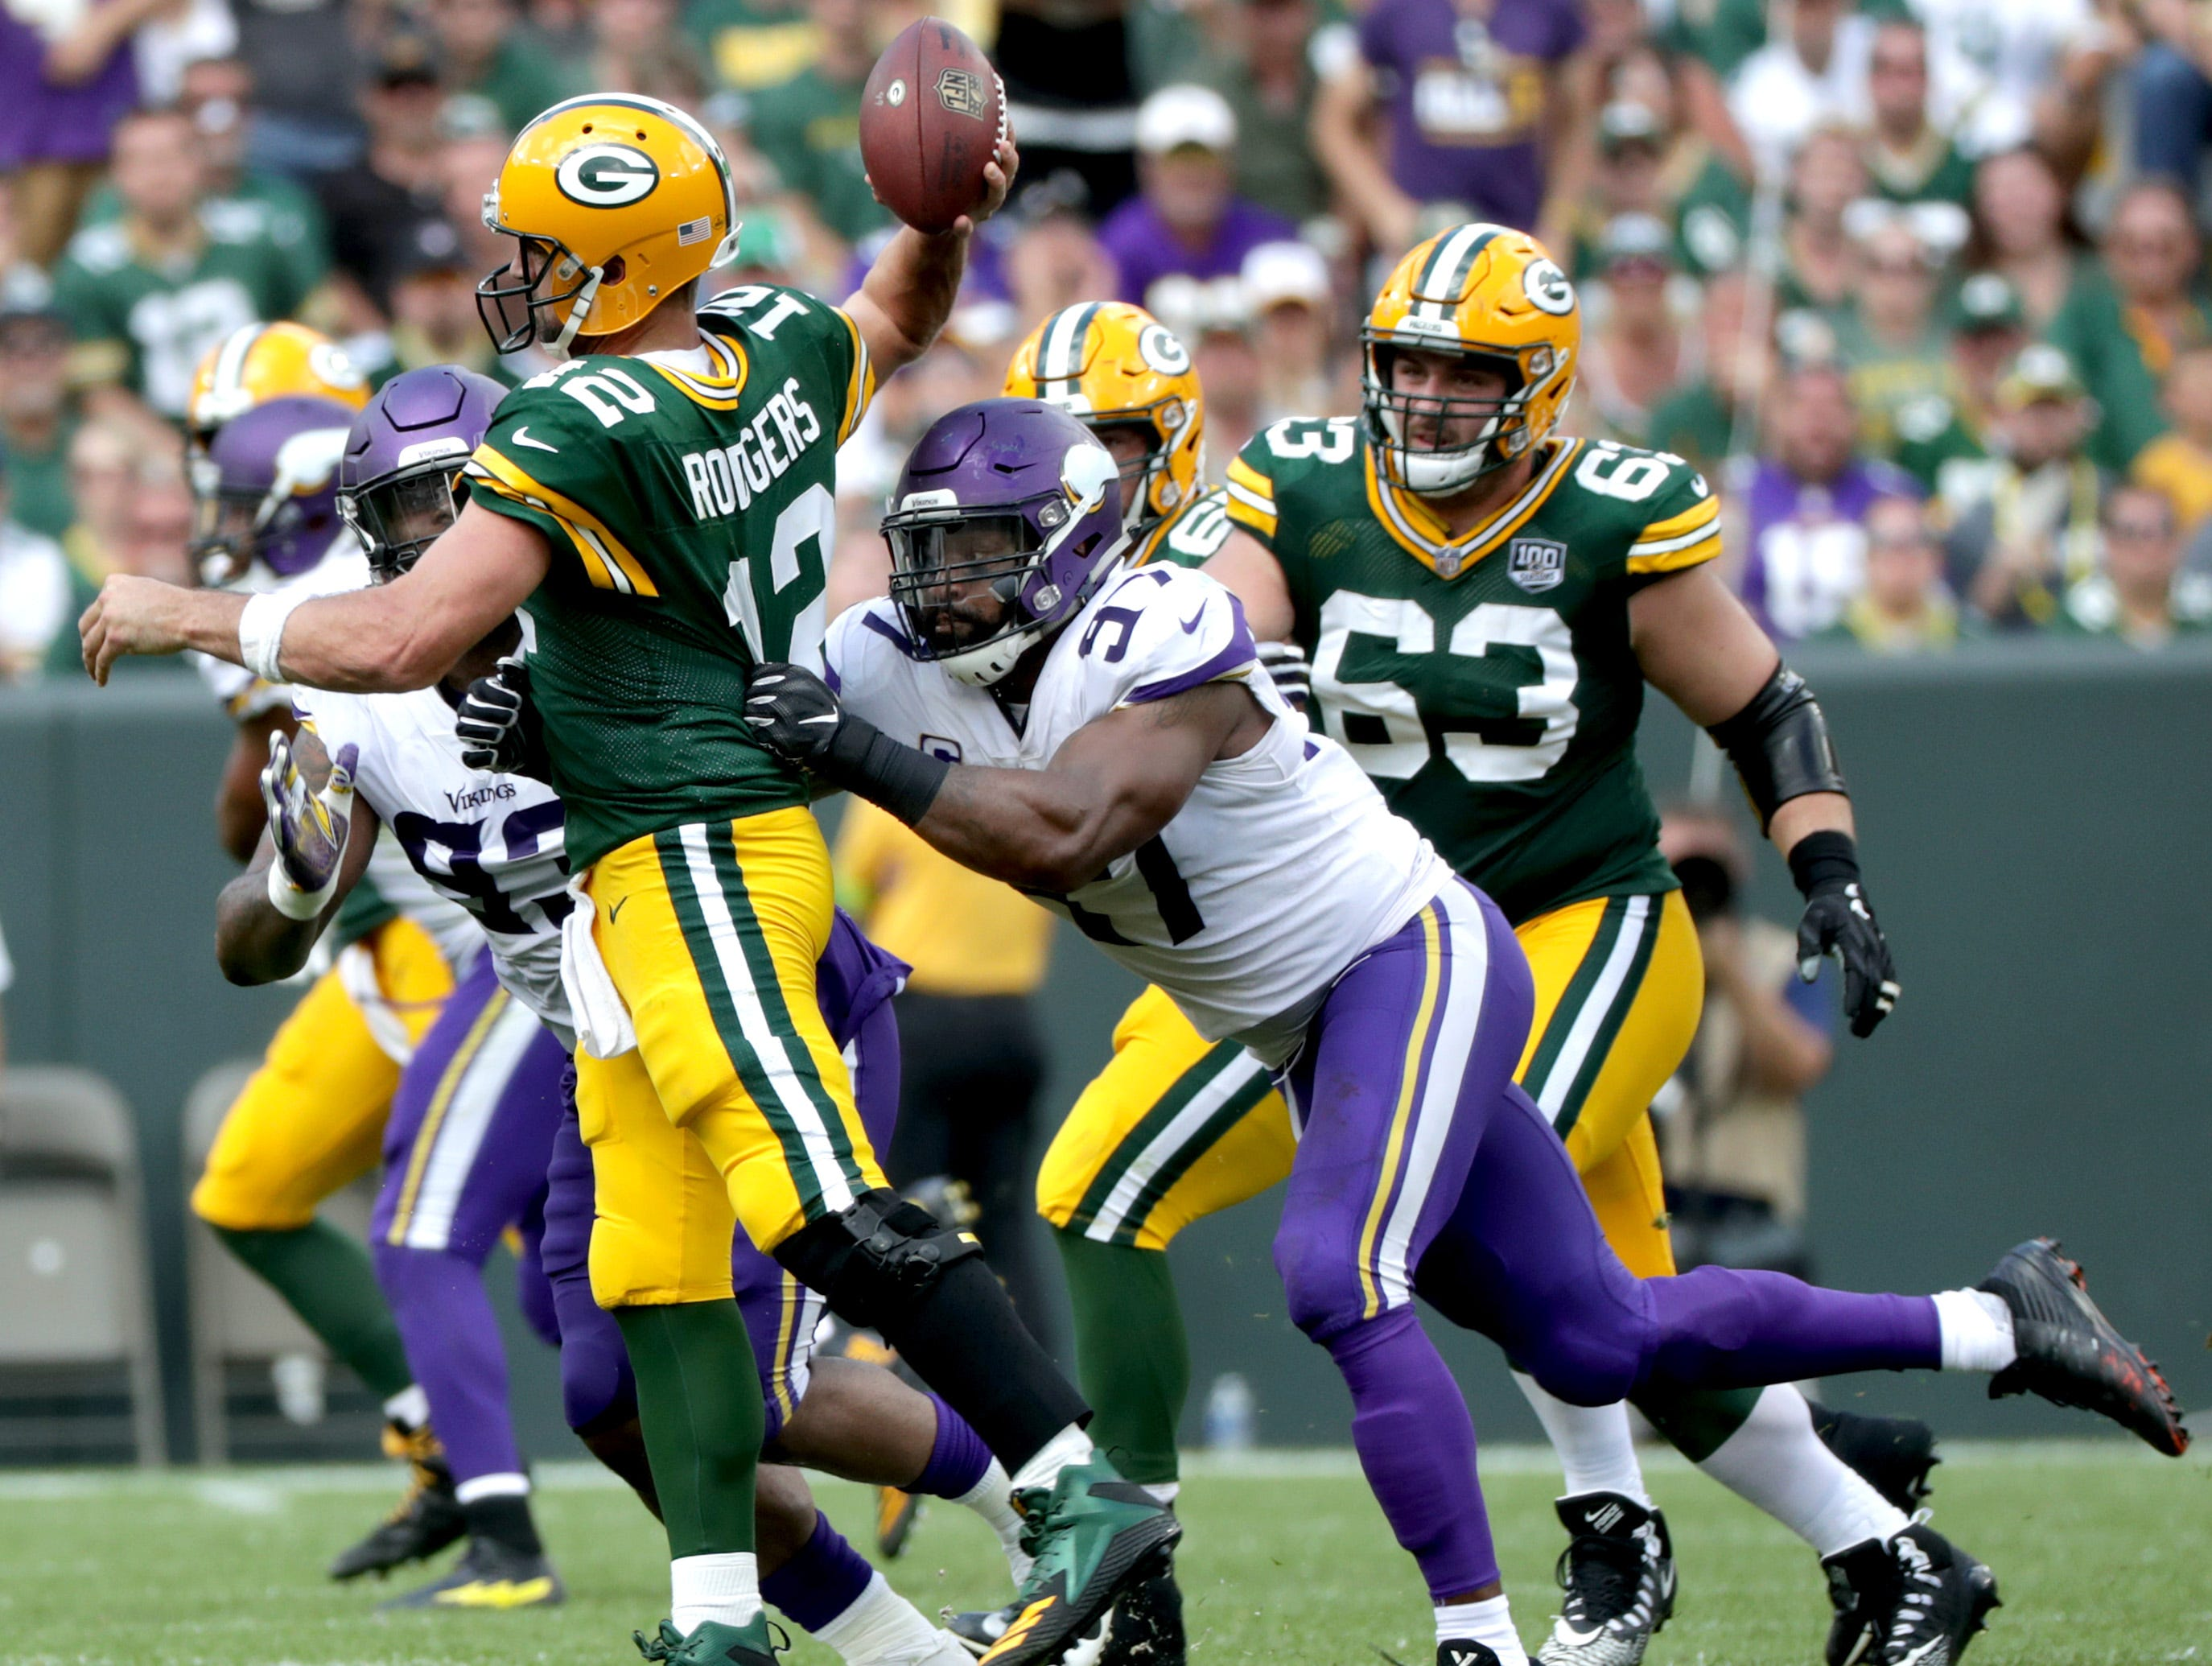 Green Bay Packers quarterback Aaron Rodgers is pressured in the fourth qaurter by Minnesota Vikings defensive end Everson Griffen during their football game on Sunday, September 16, 2018, at Lambeau Field in Green Bay, Wis. The game ended in a 29 to 29 tie.Wm. Glasheen/USA TODAY NETWORK-Wisconsin.